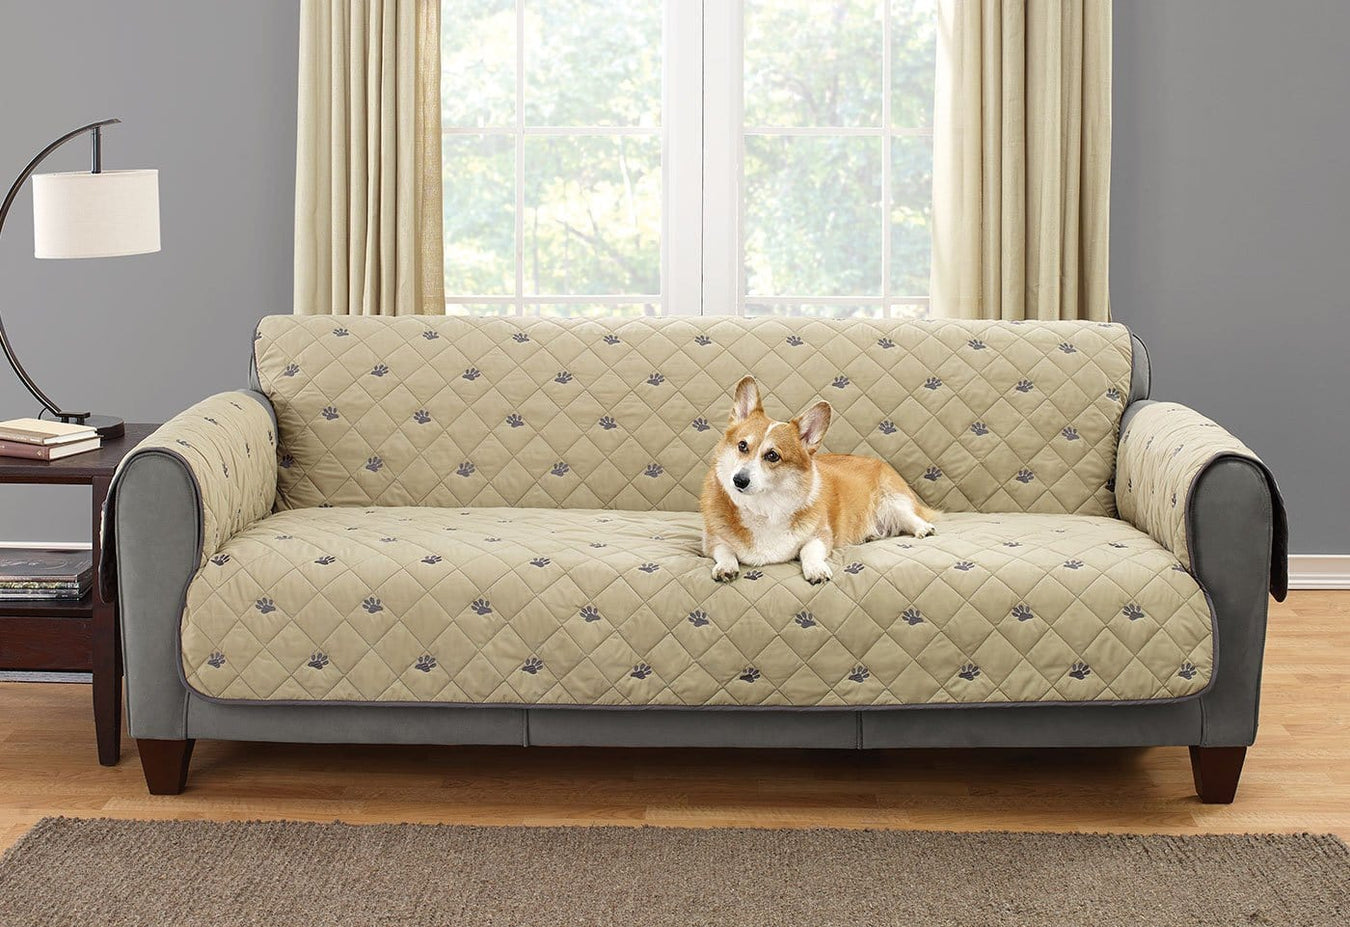 Deluxe Embroideried Sofa Furniture Cover